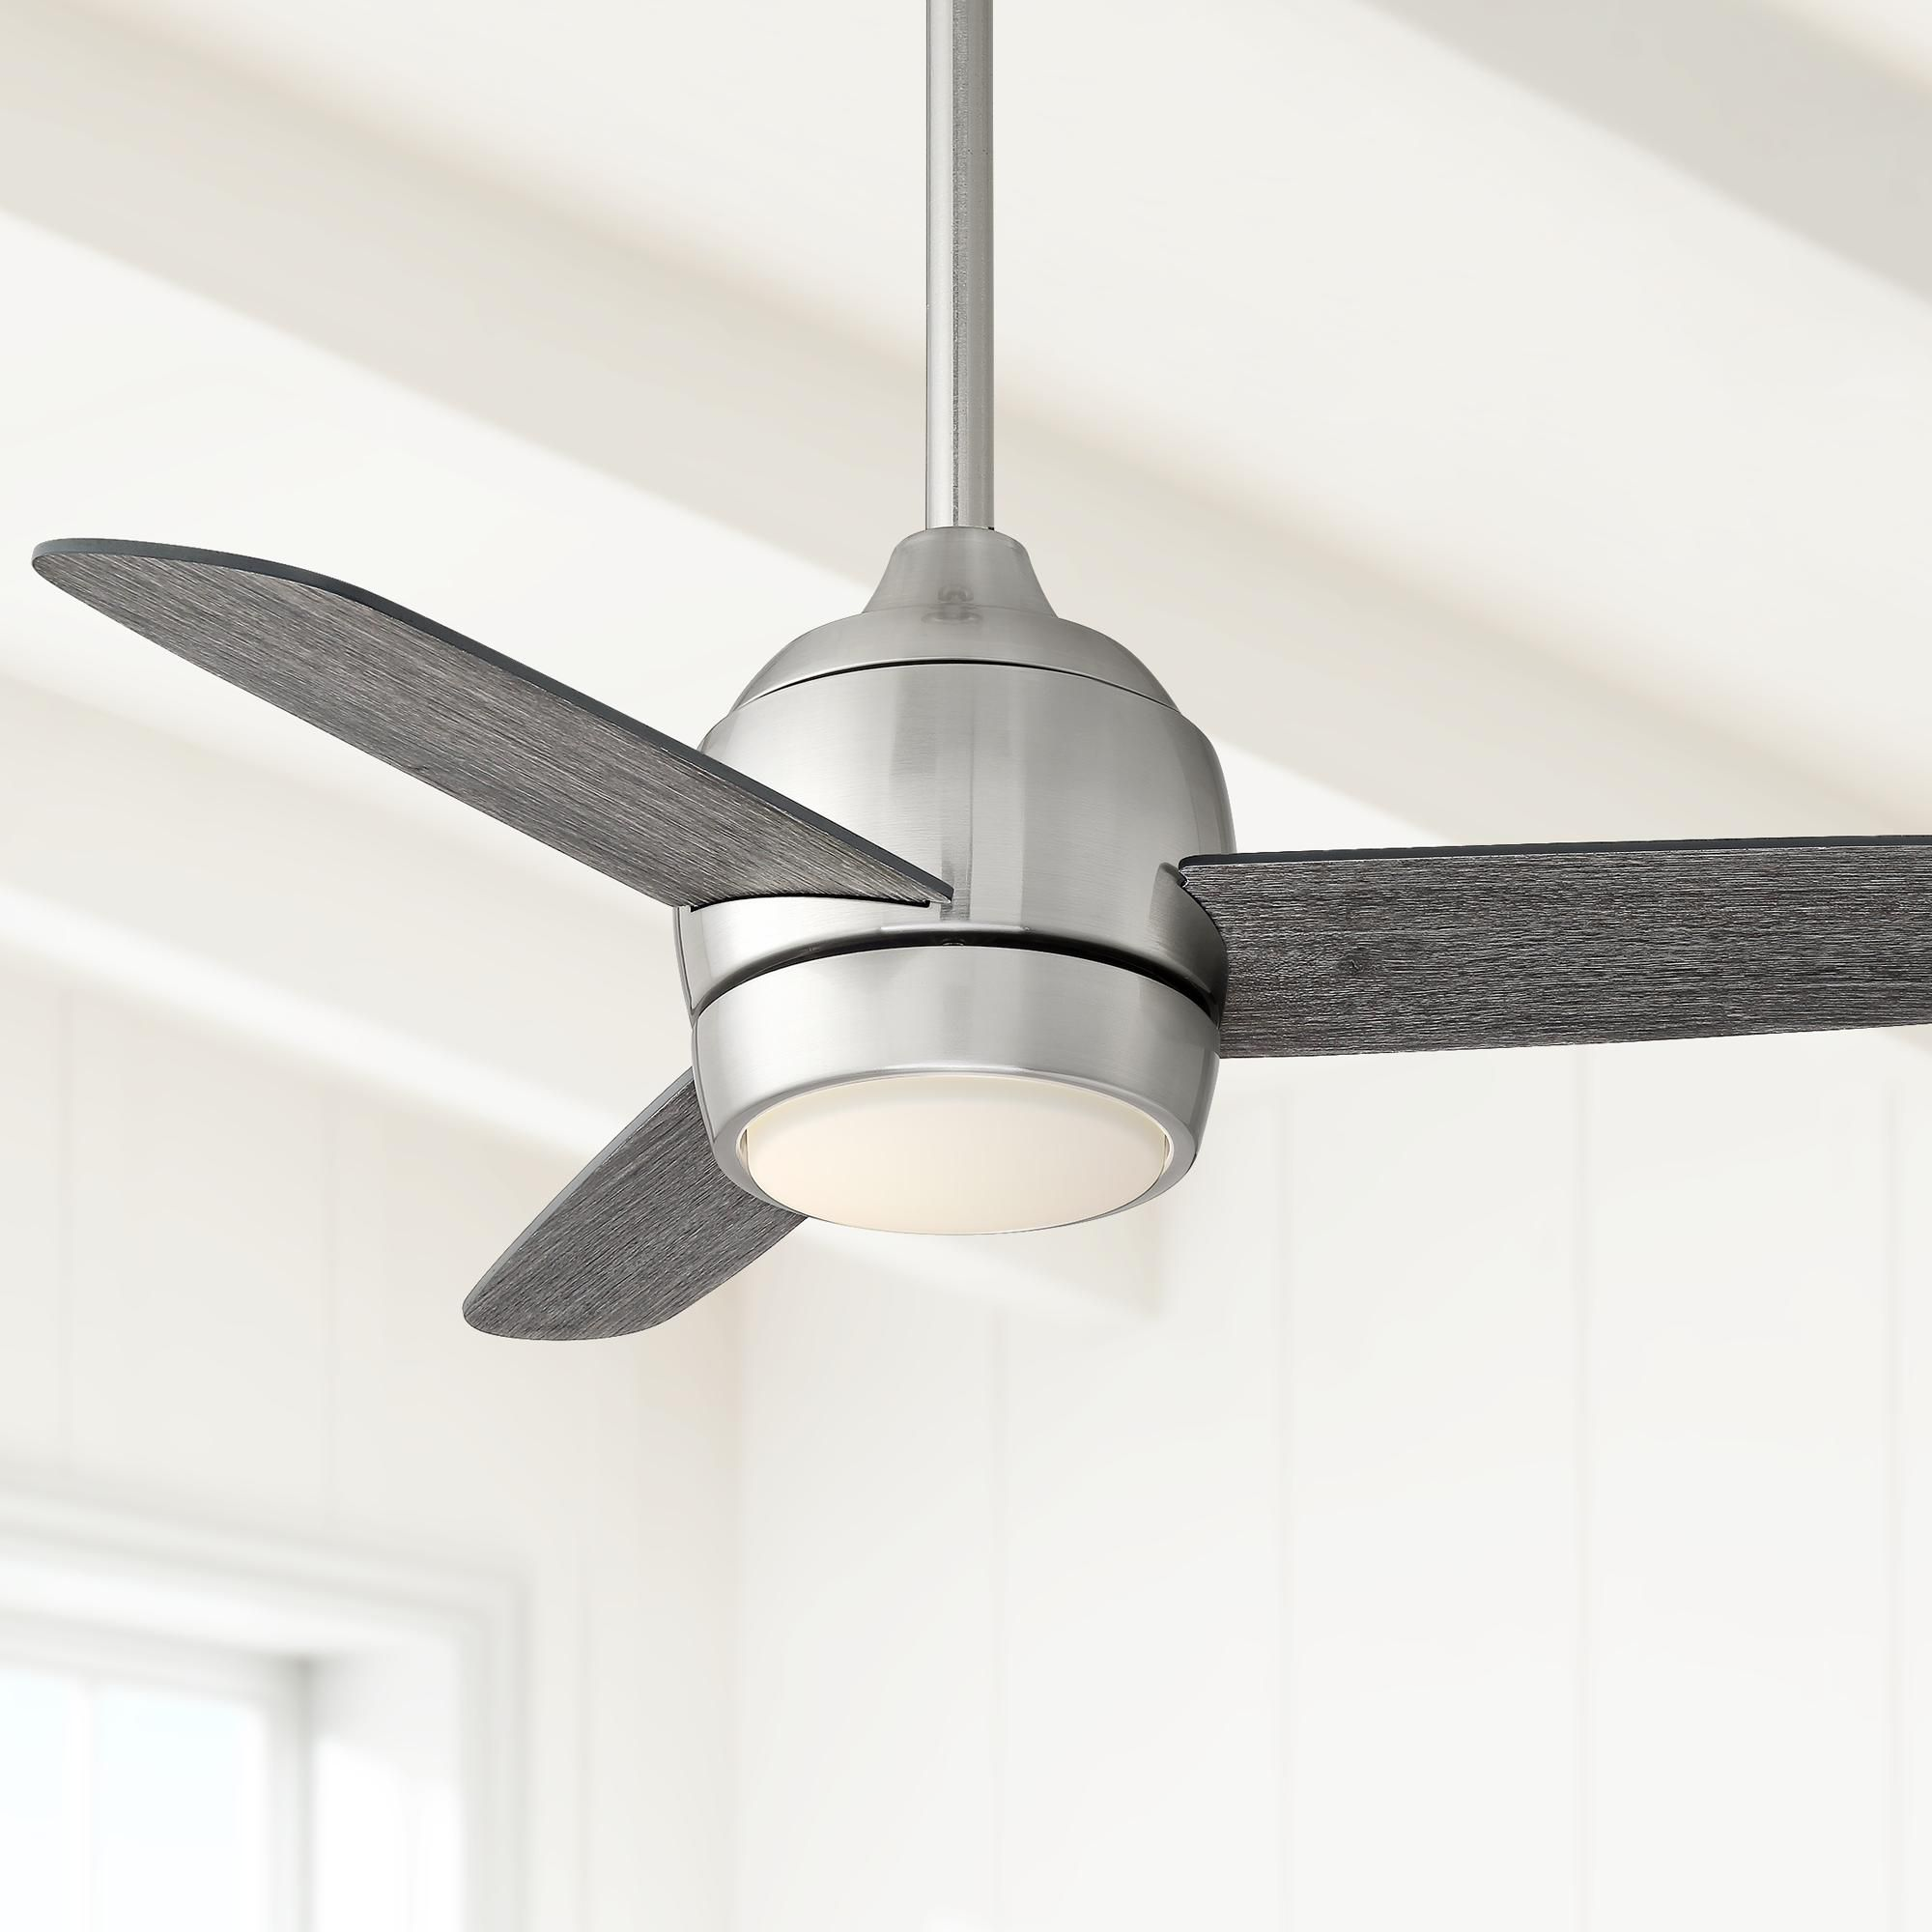 Ceiling Fans 36 Chalet Brushed Nickel And Gray Wood Led Ceiling Fan In 2020 Led Ceiling Fan Ceiling Fan Modern Ceiling Fan